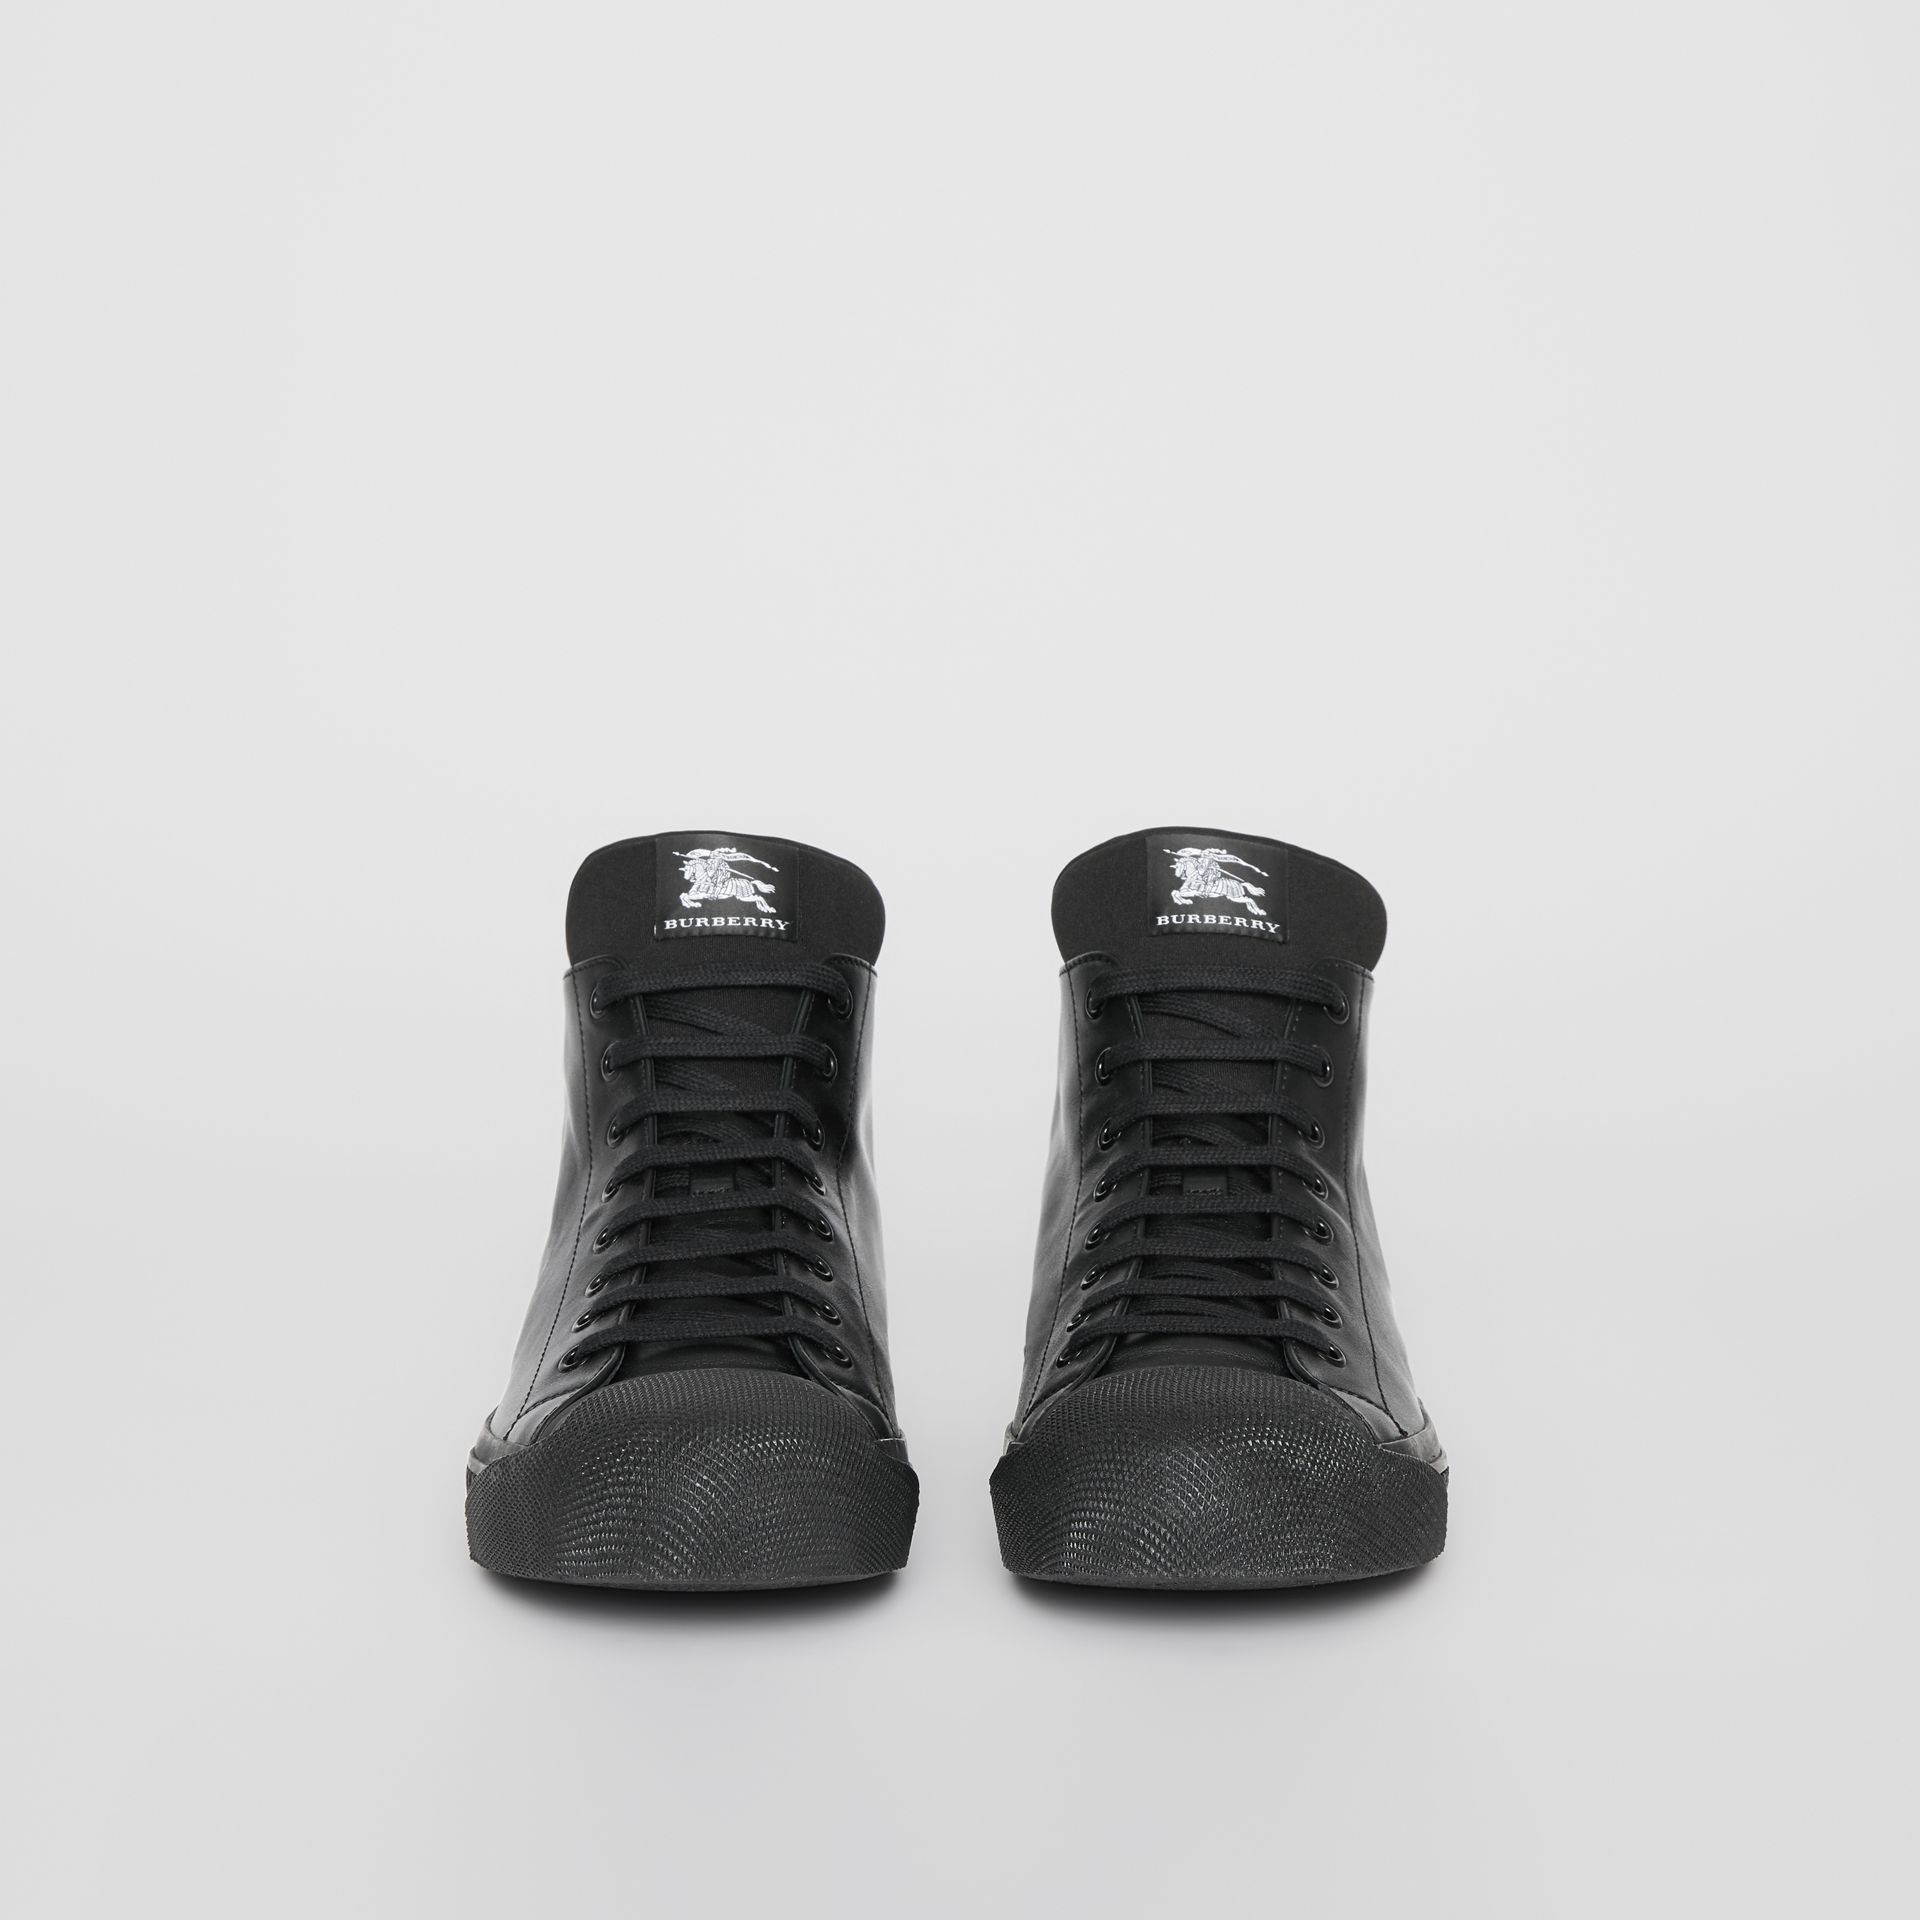 Leather and Neoprene High-top Sneakers in Black - Men | Burberry Australia - gallery image 3